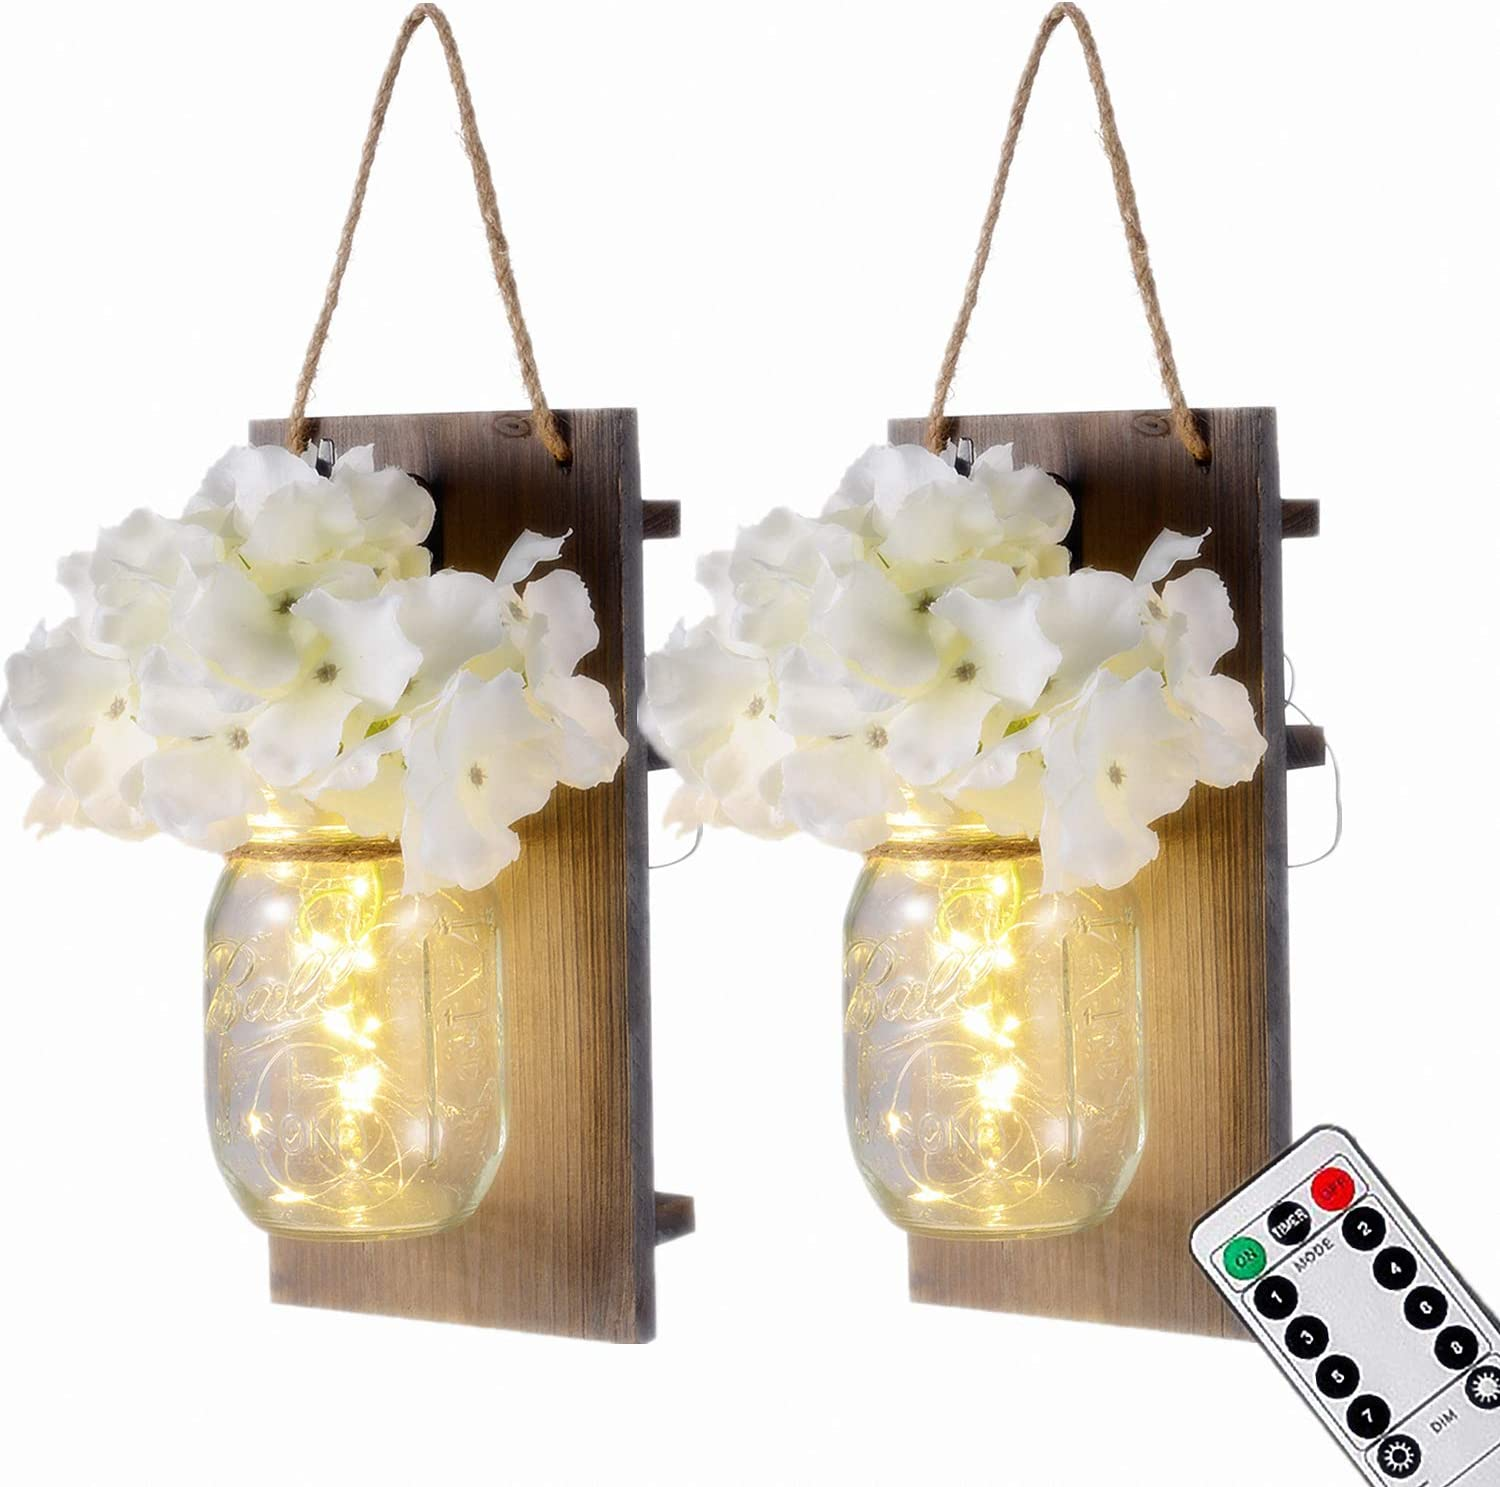 Mason Jar Wall Lights with Remote Control, LIGHTESS Rustic Bedroom Wall Decor, Hanging Battery Powered Jar Sconce with LED Fairy Lights for Farmhouse Decor, SYA11 (Set of 2)